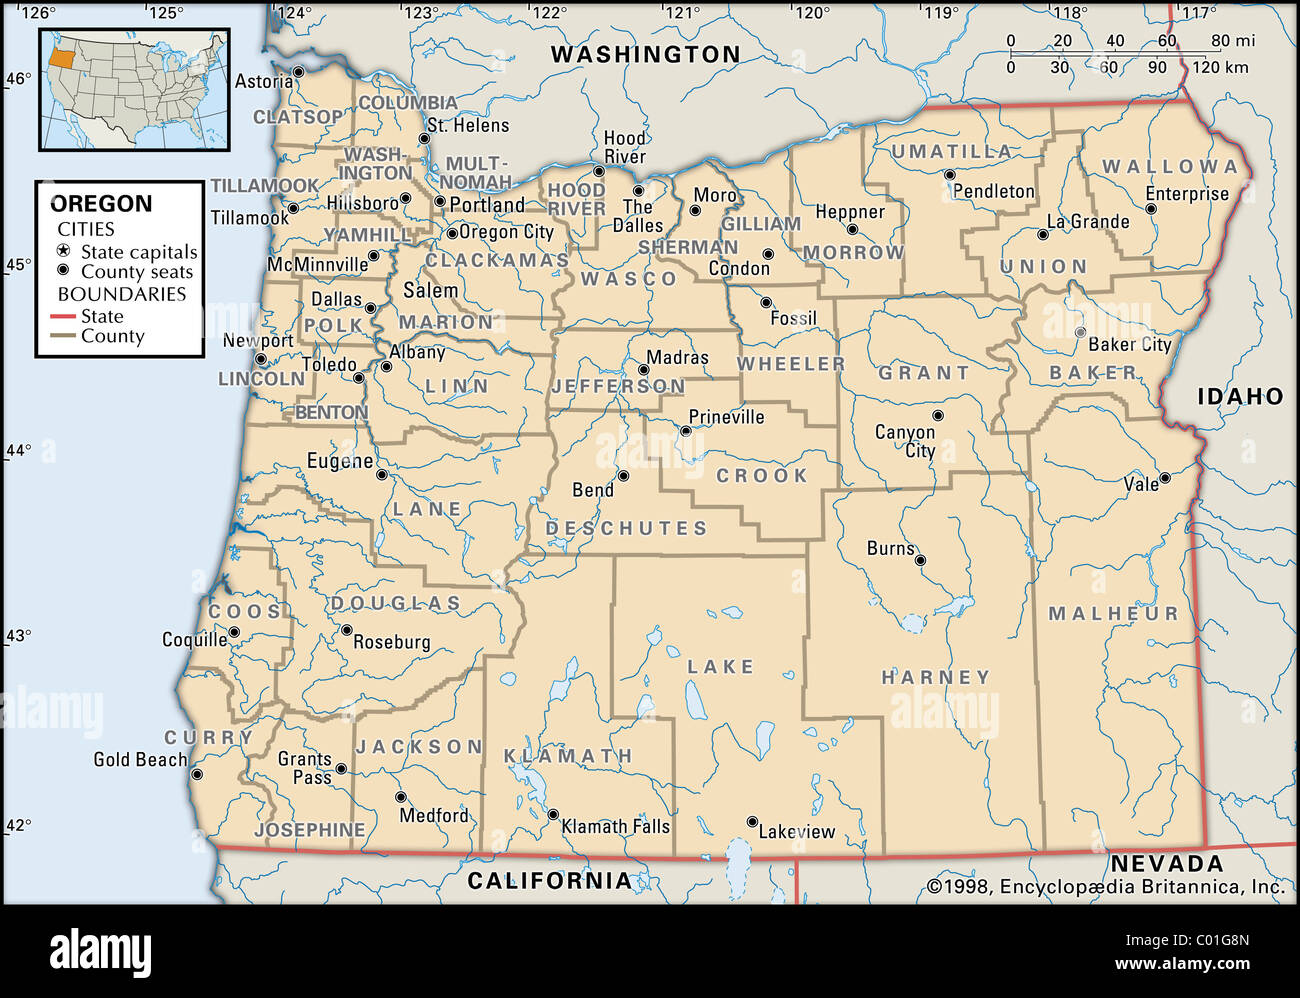 Political Map Of Oregon Stock Photo Royalty Free Image - Mapoforegon